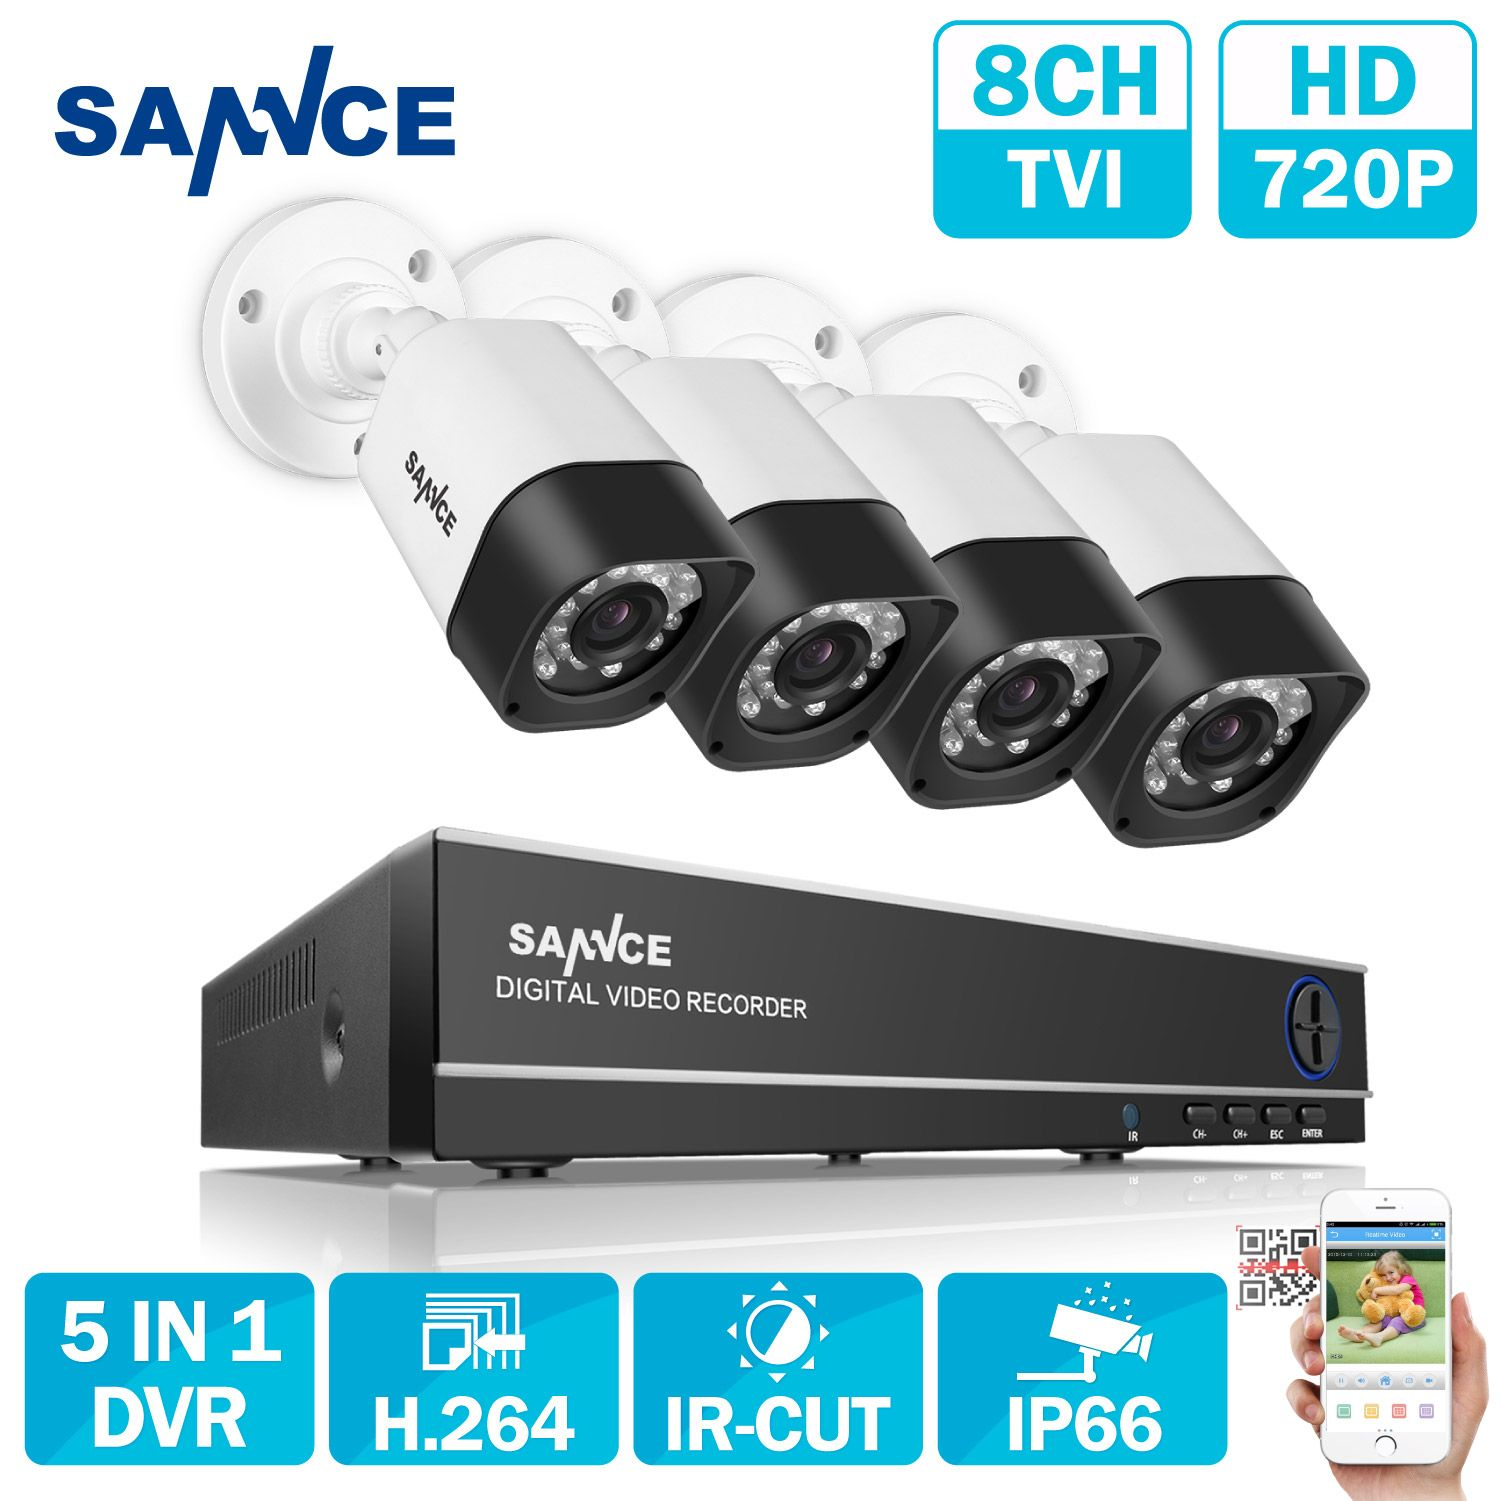 SANNCE 8CH AHD 5 IN 1 Security DVR System <font><b>HDMI</b></font> 1280*720 1200TVL AHD Weatherproof Outdoor CCTV Camera 1.0MP AHD Surveillance Kit